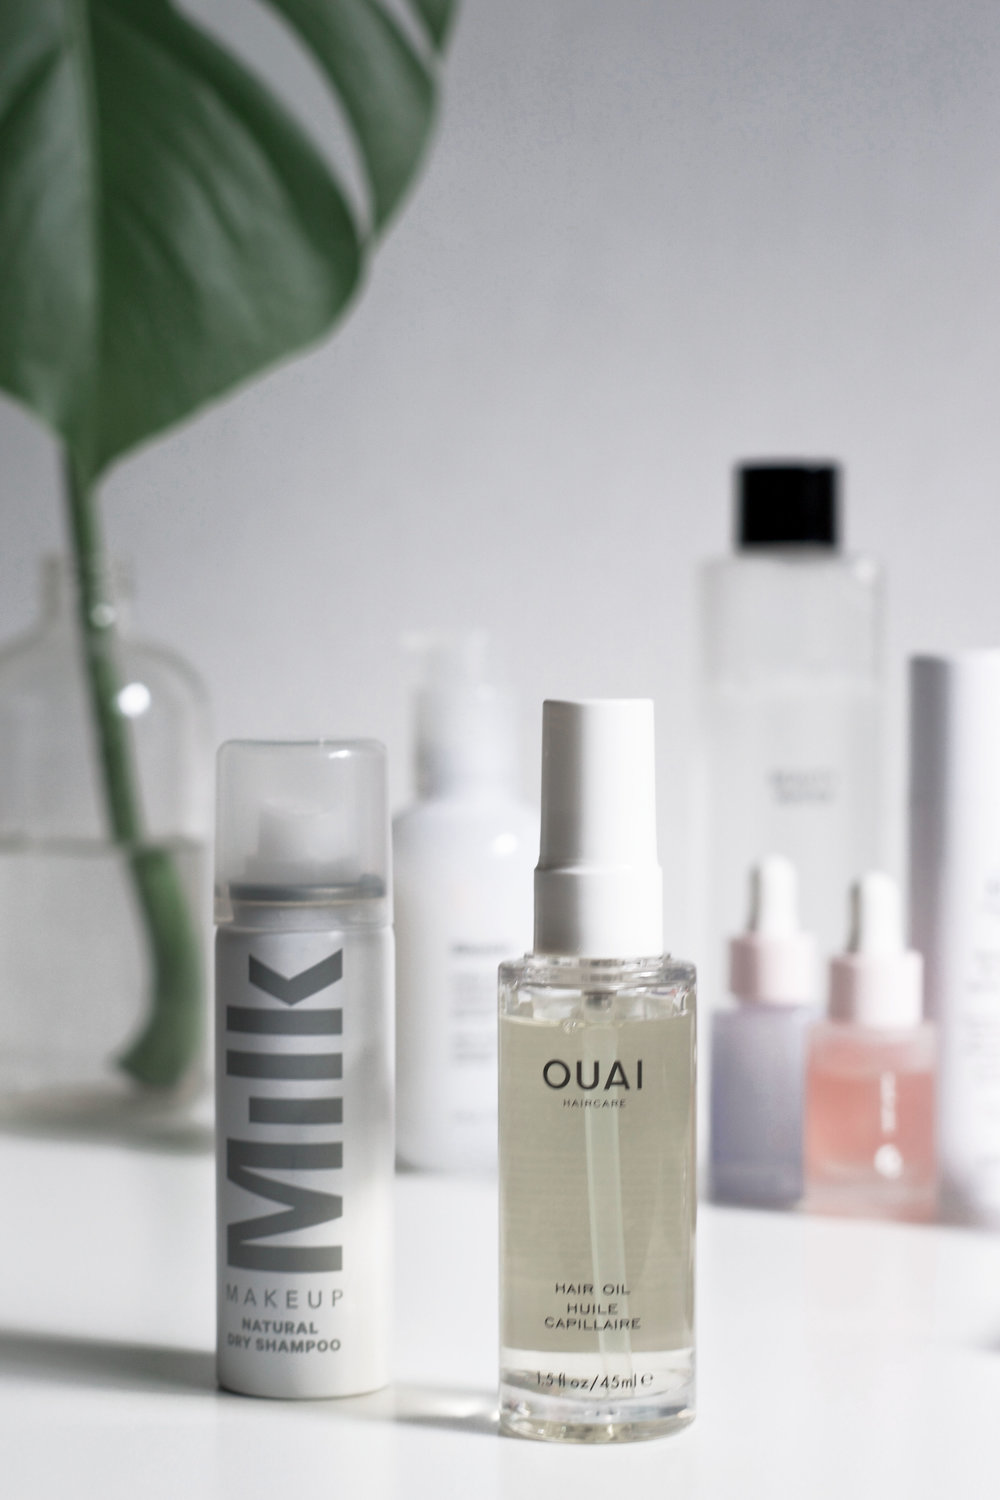 CHY-Beauty-Discoveries-Haircare-Milk-Makeup-Ouai-Hair-Oil